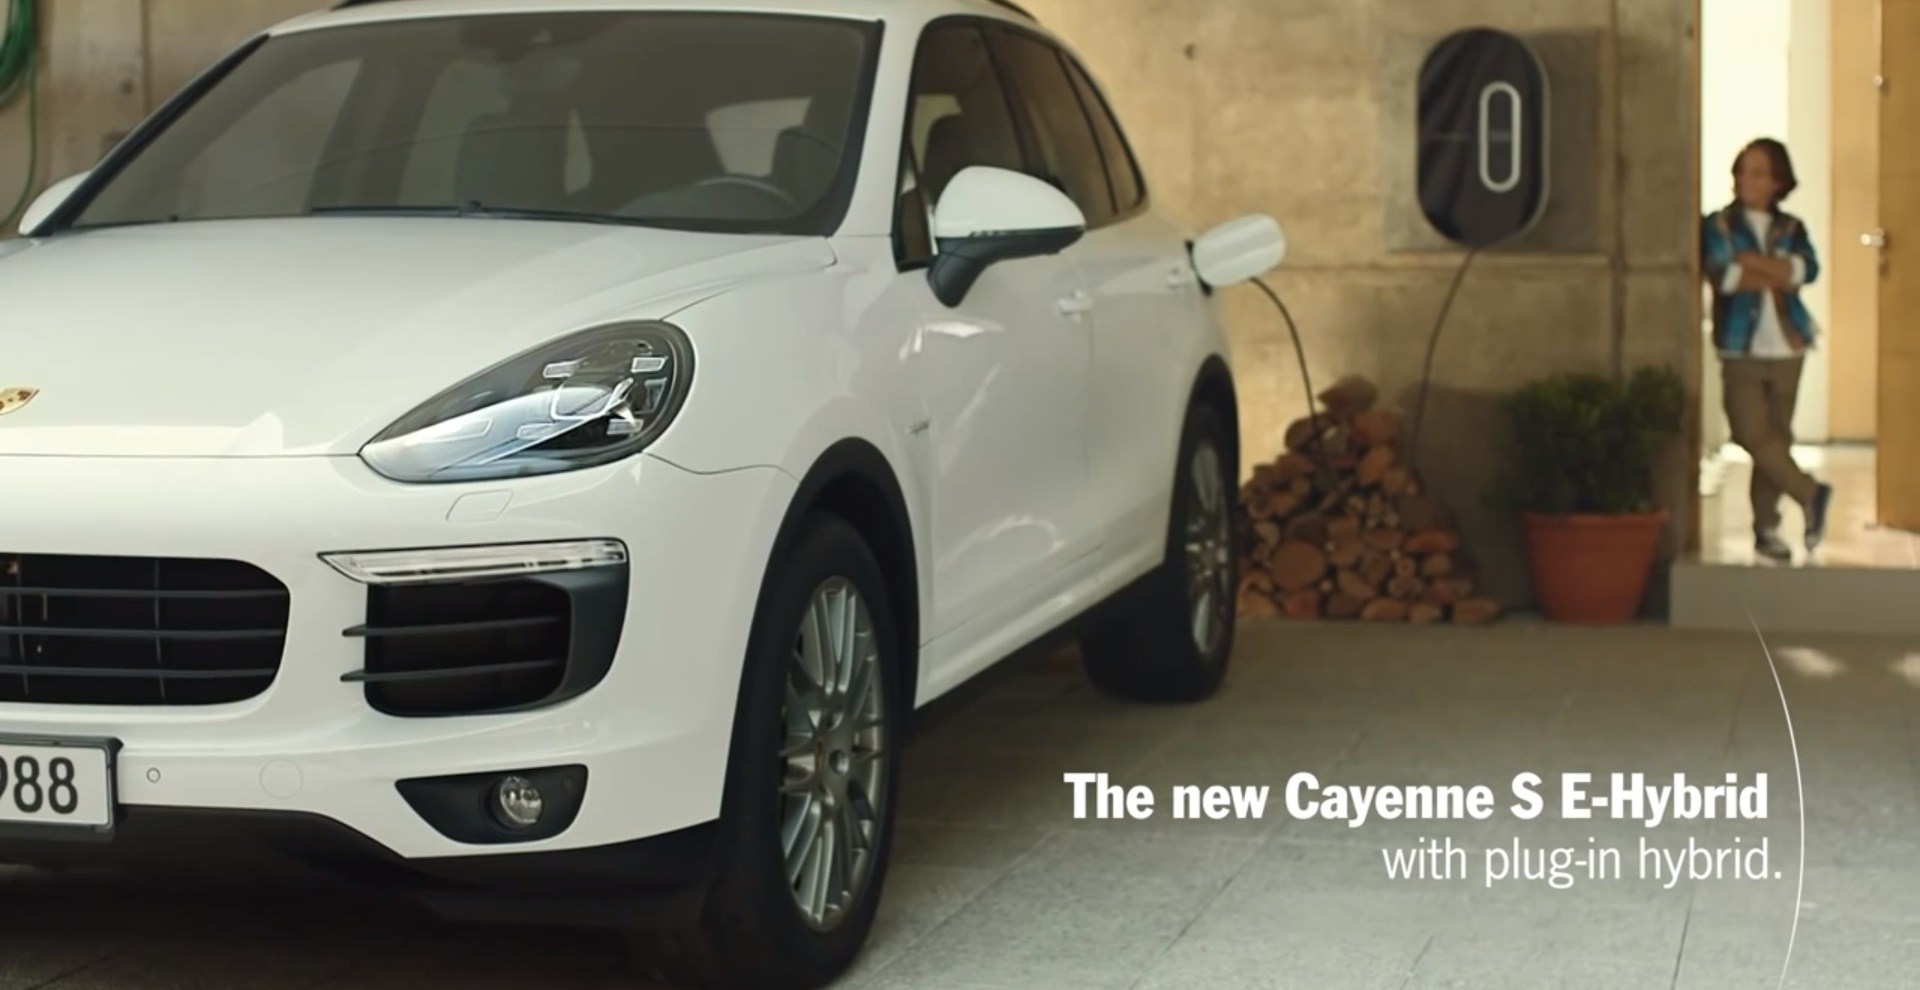 2017 Cayenne S E Hybrid Commercial Refueling Is Child Play